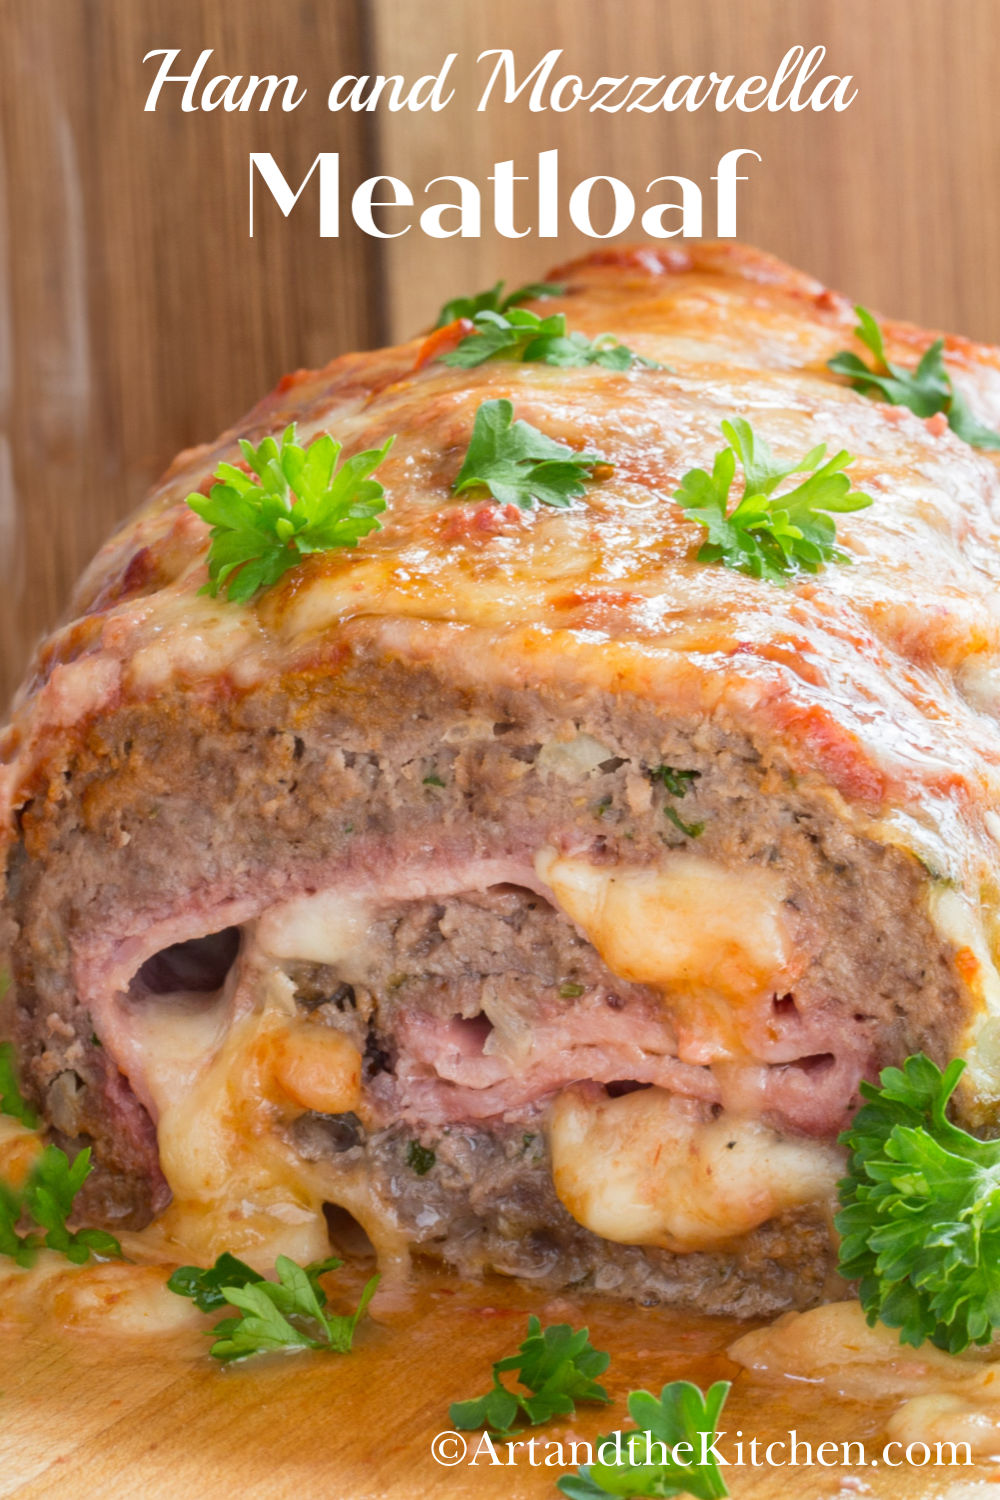 Homemade meatloaf stuffed with slices of ham and mozzarella cheese. This easy to make recipe takes meatloaf to a whole new level of delicious! Ground beef is mixed with bread crumbs and an assortment of spices, then rolled in a layer of ham and cheese. Topping off the meatloaf is rich tomato sauce and melted cheese.  via @artandthekitch